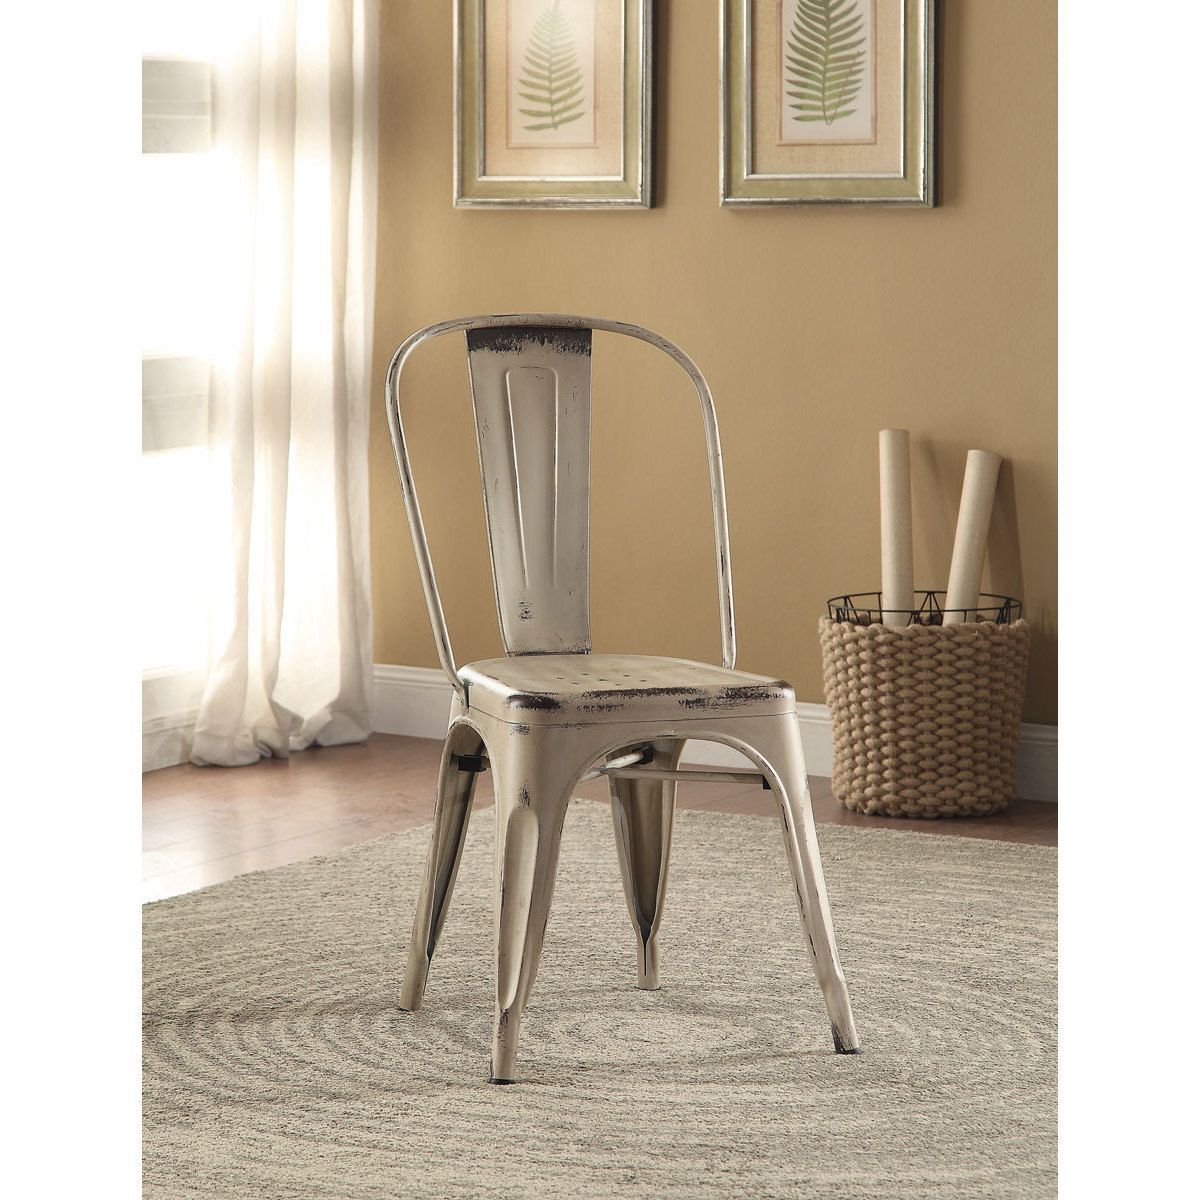 Coaster Company Home Furnishings Metal Chair White (Set of